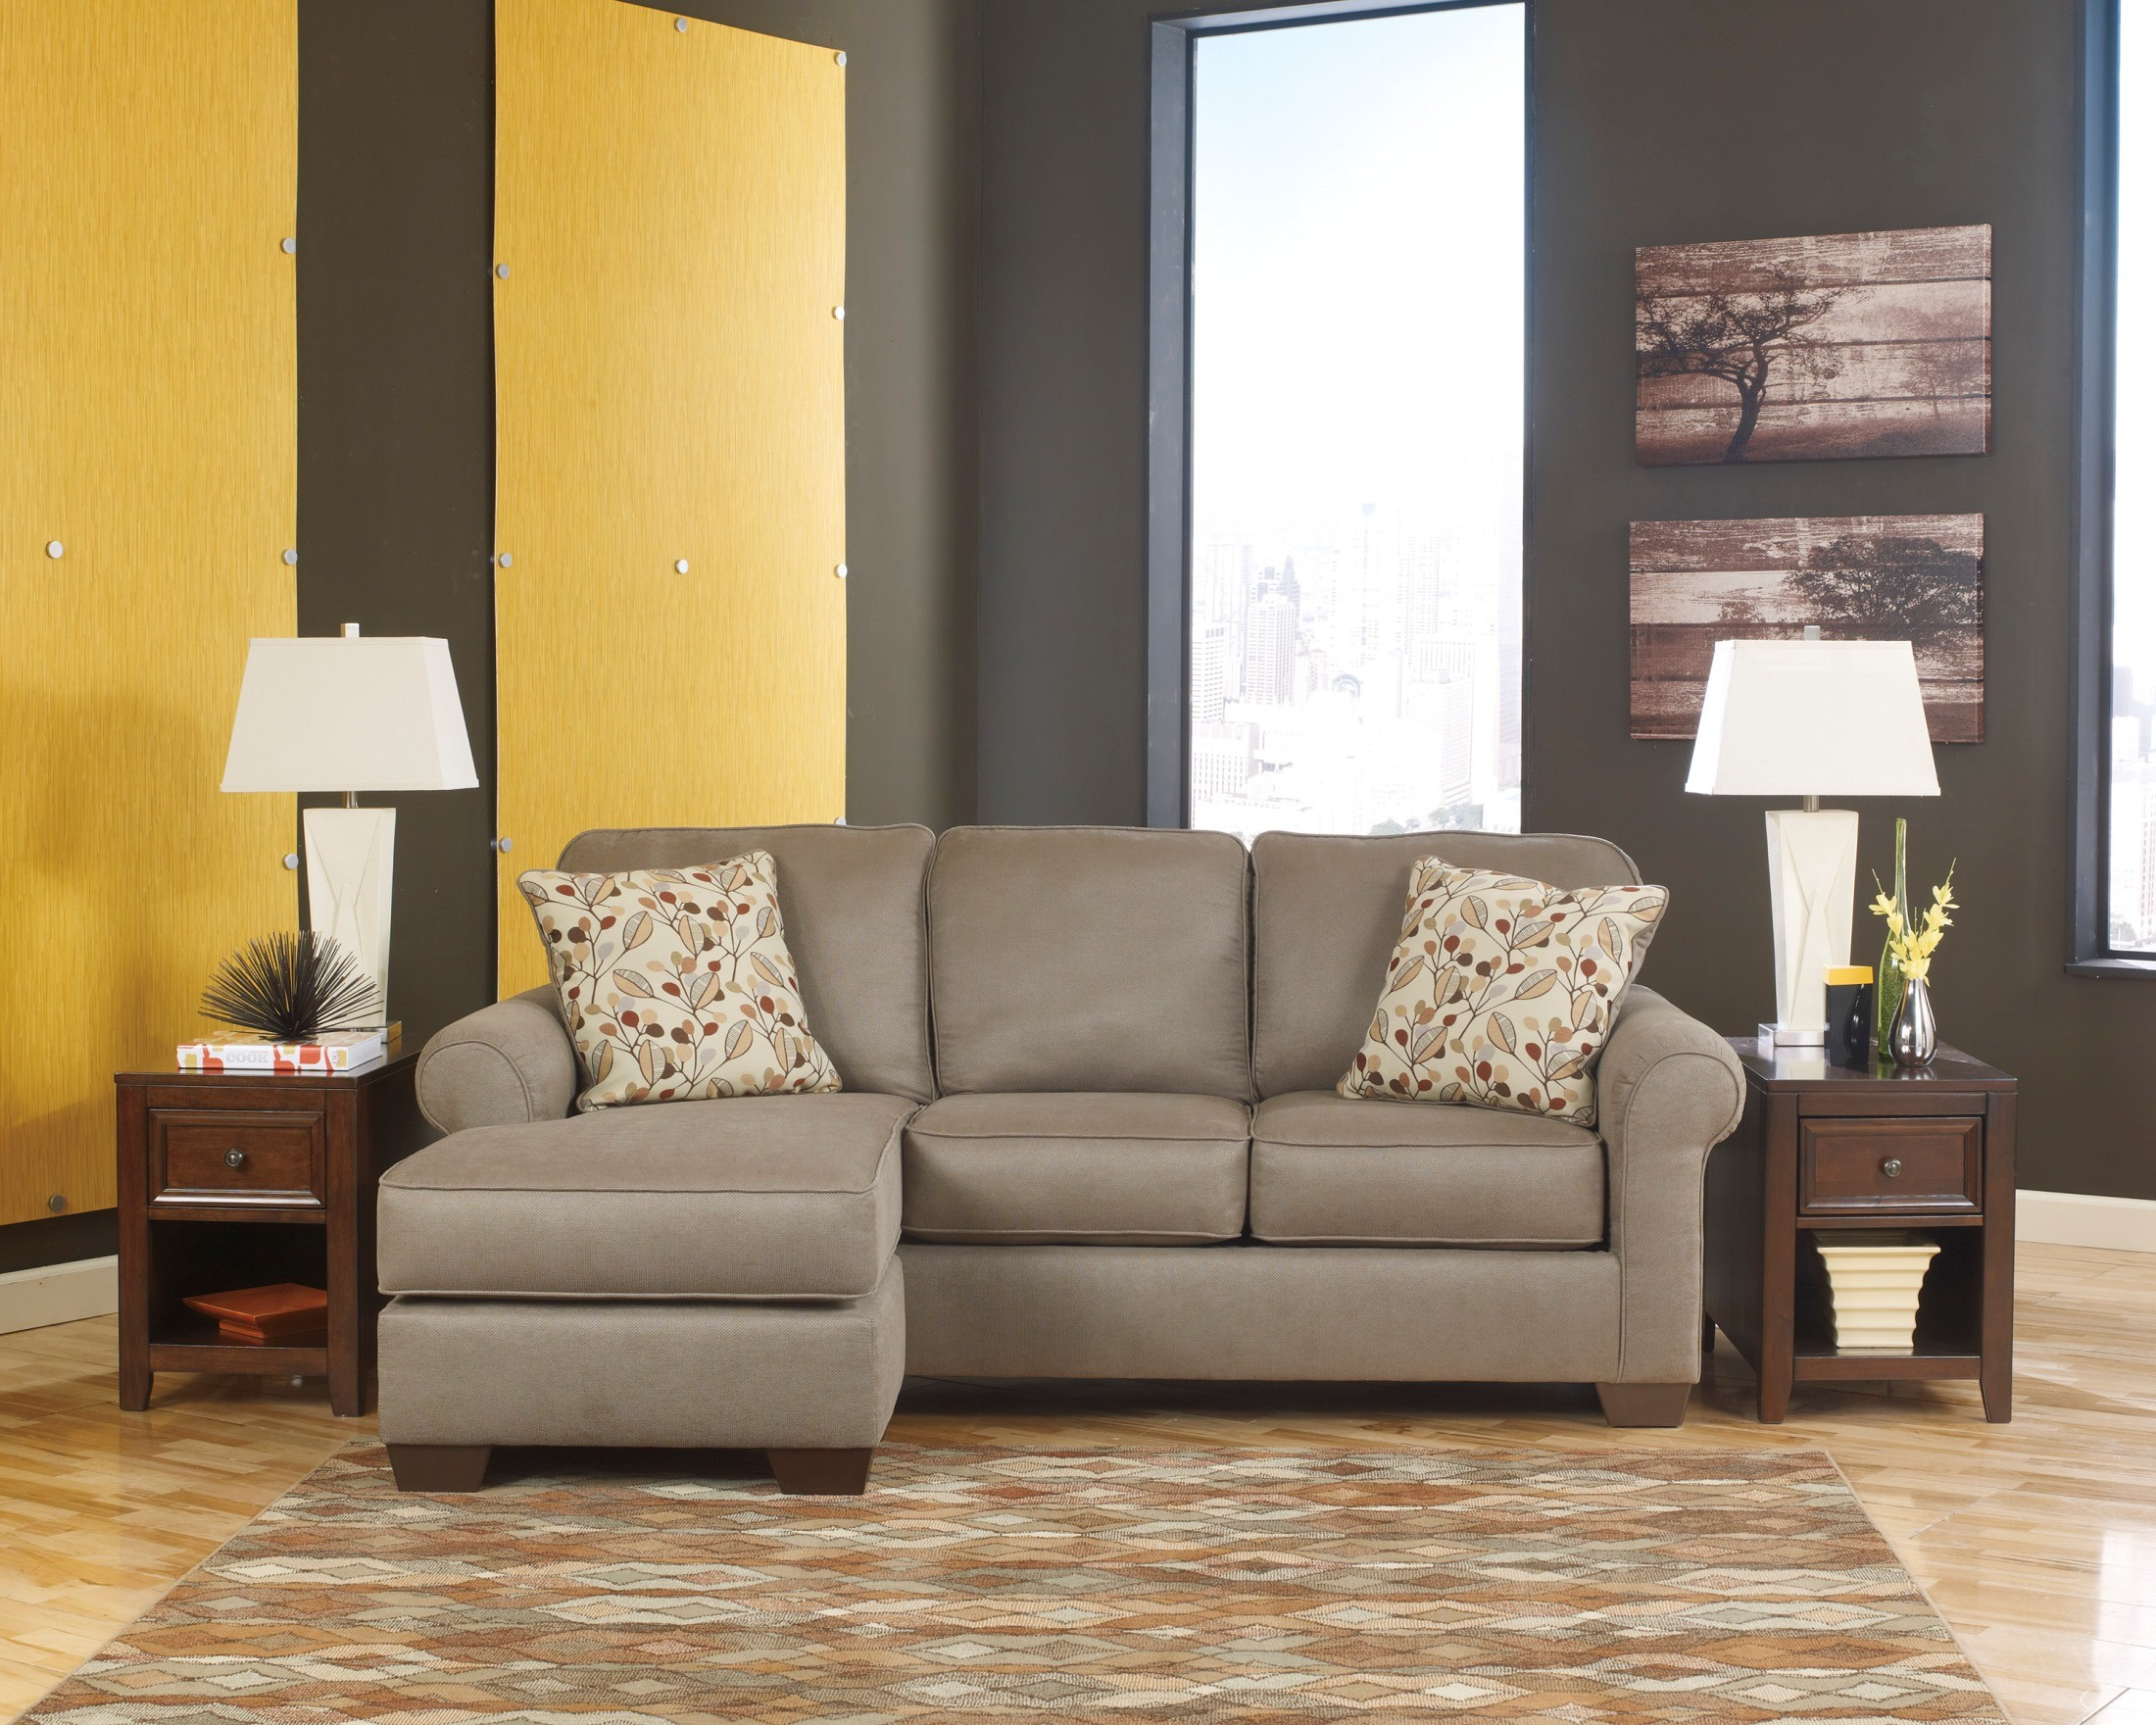 chaise sofas perth warehouse direct bayswater leather and microfiber sofa set danely dusk with from ashley 3550018